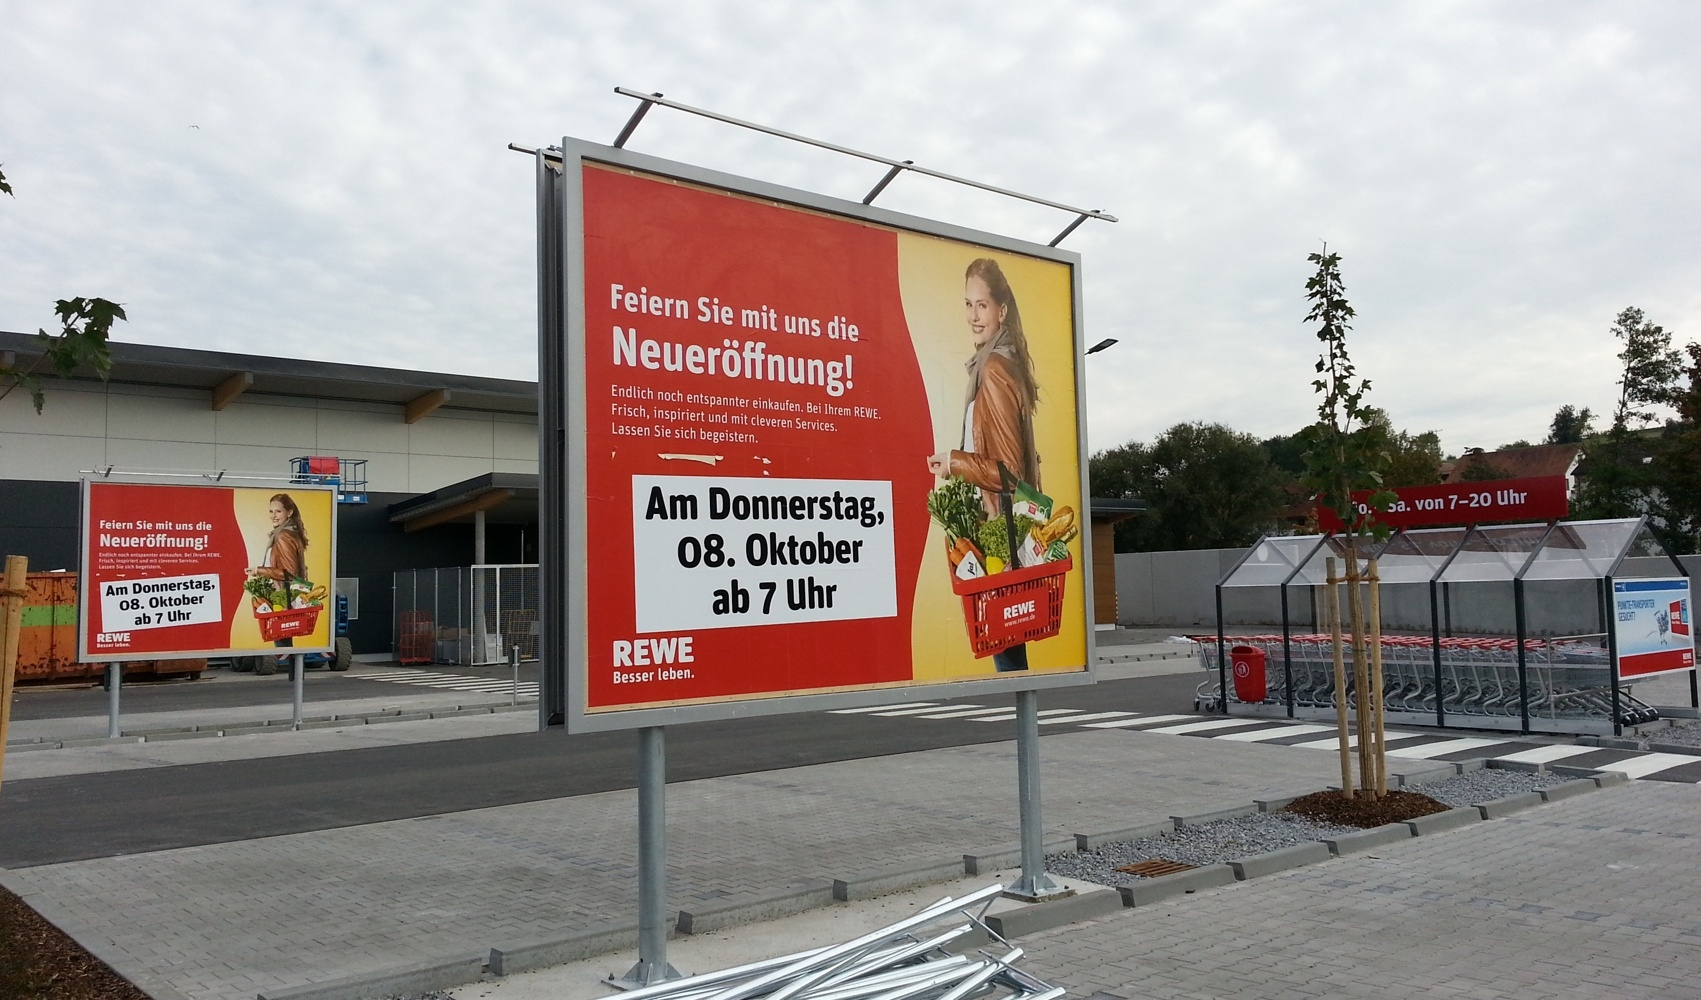 REWE Bad Abbach